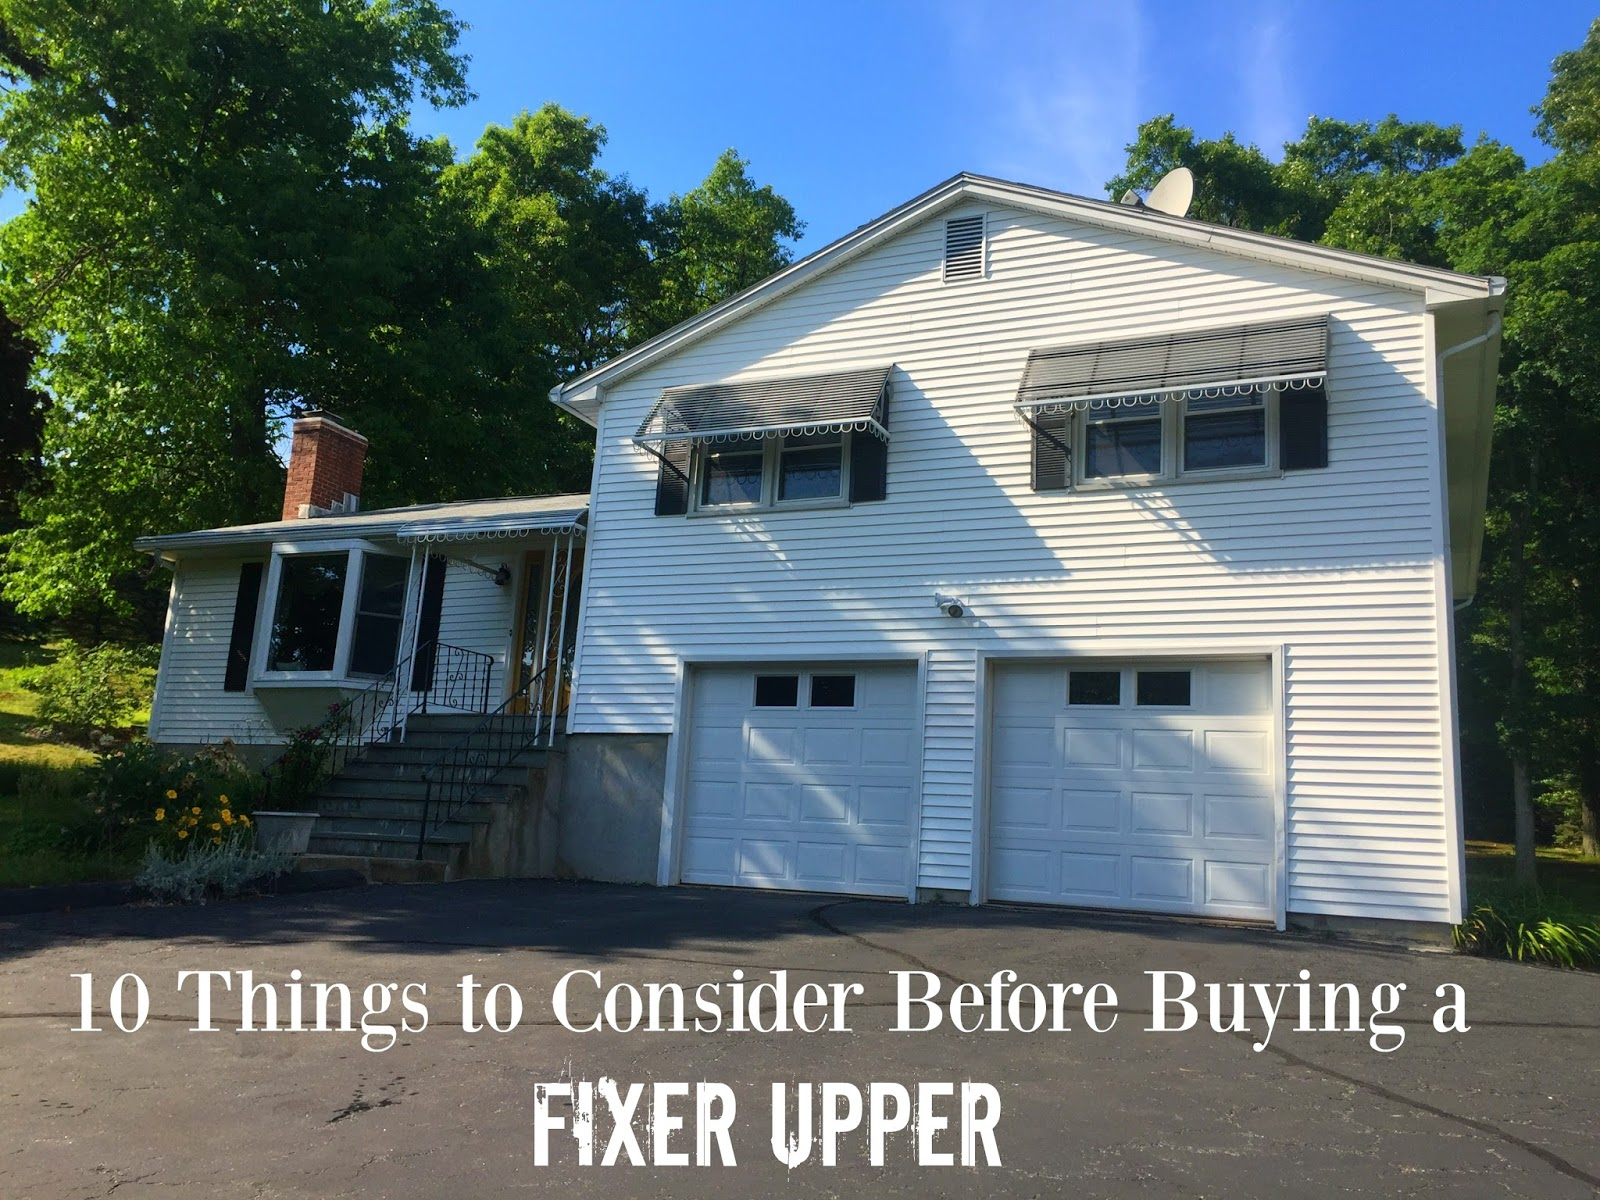 Drew danielle design 10 things to consider before buying - Buying a fixer upper ...